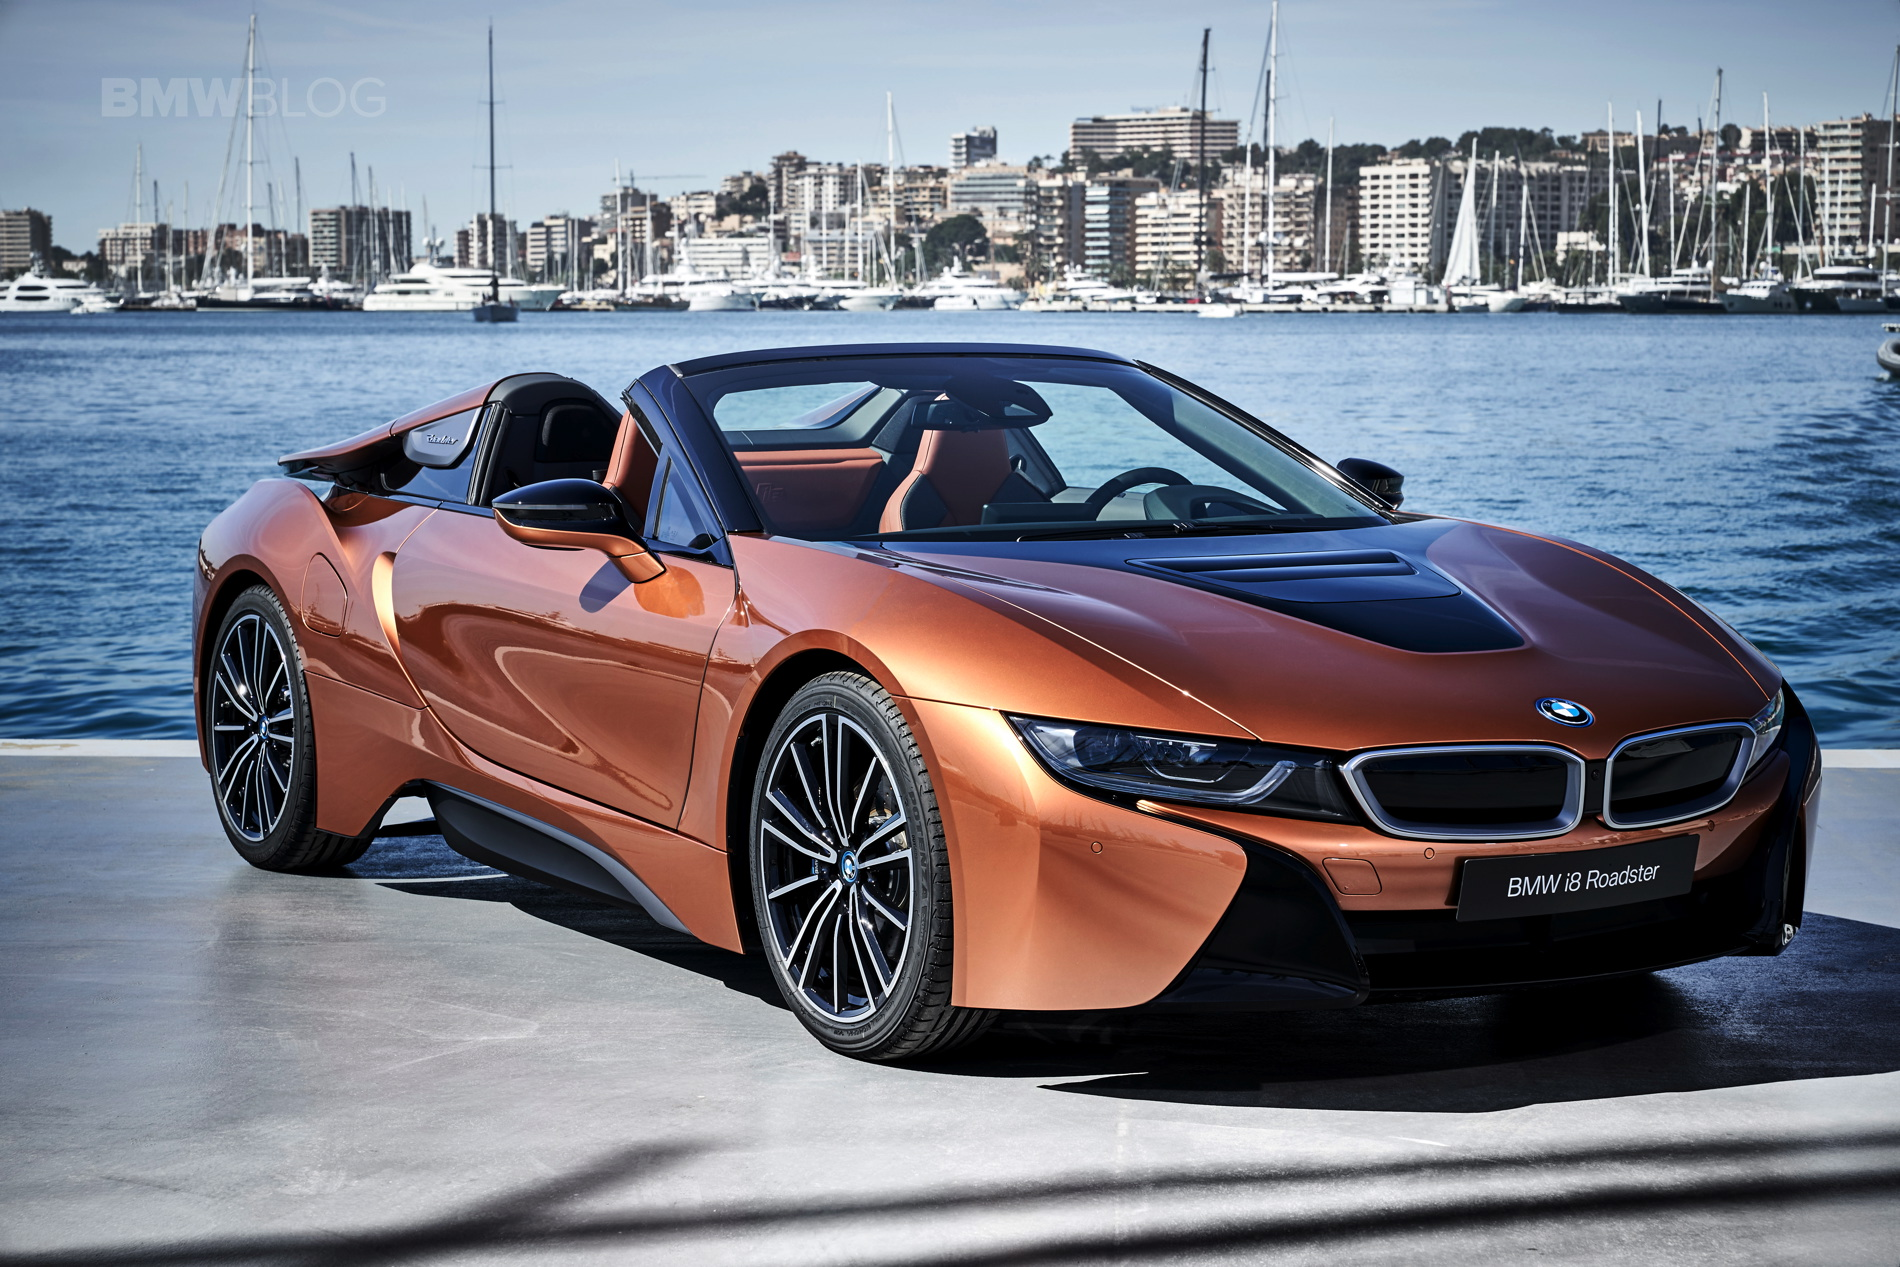 2018 BMW i8 Roadster test drive 124